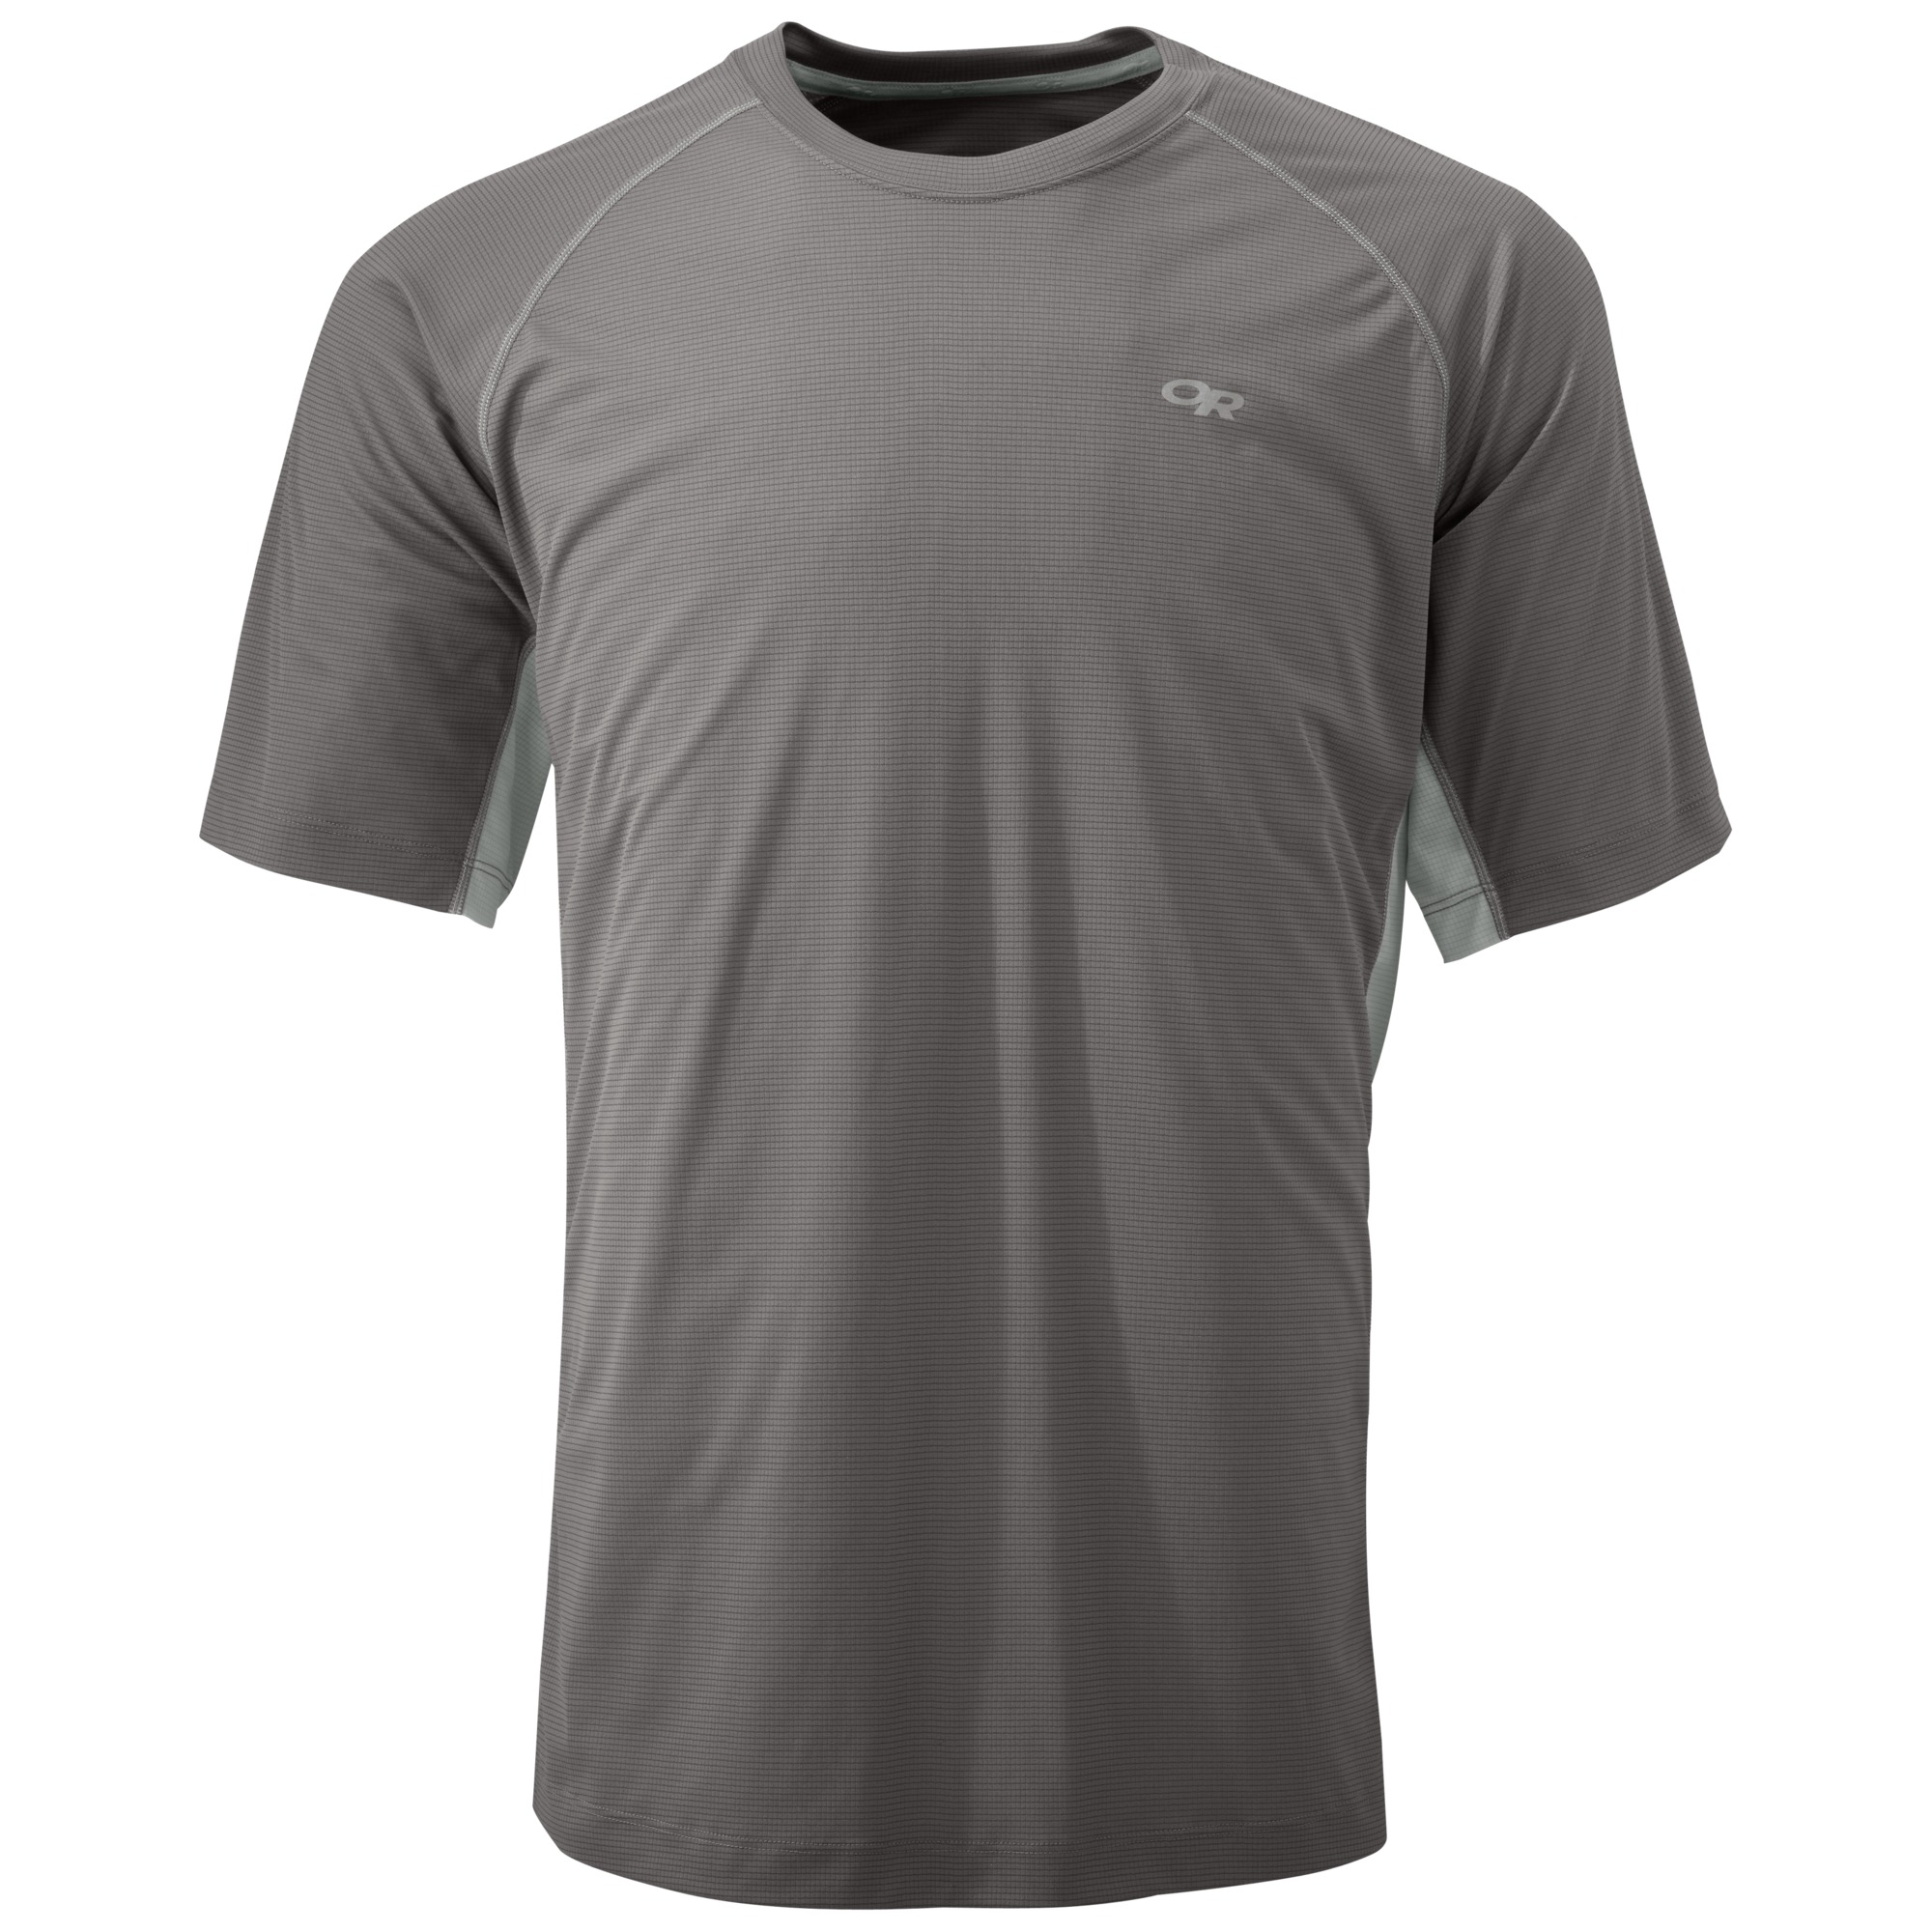 Outdoor Research Men's Echo Duo Tee-pewter/alloy-S - Gr. S